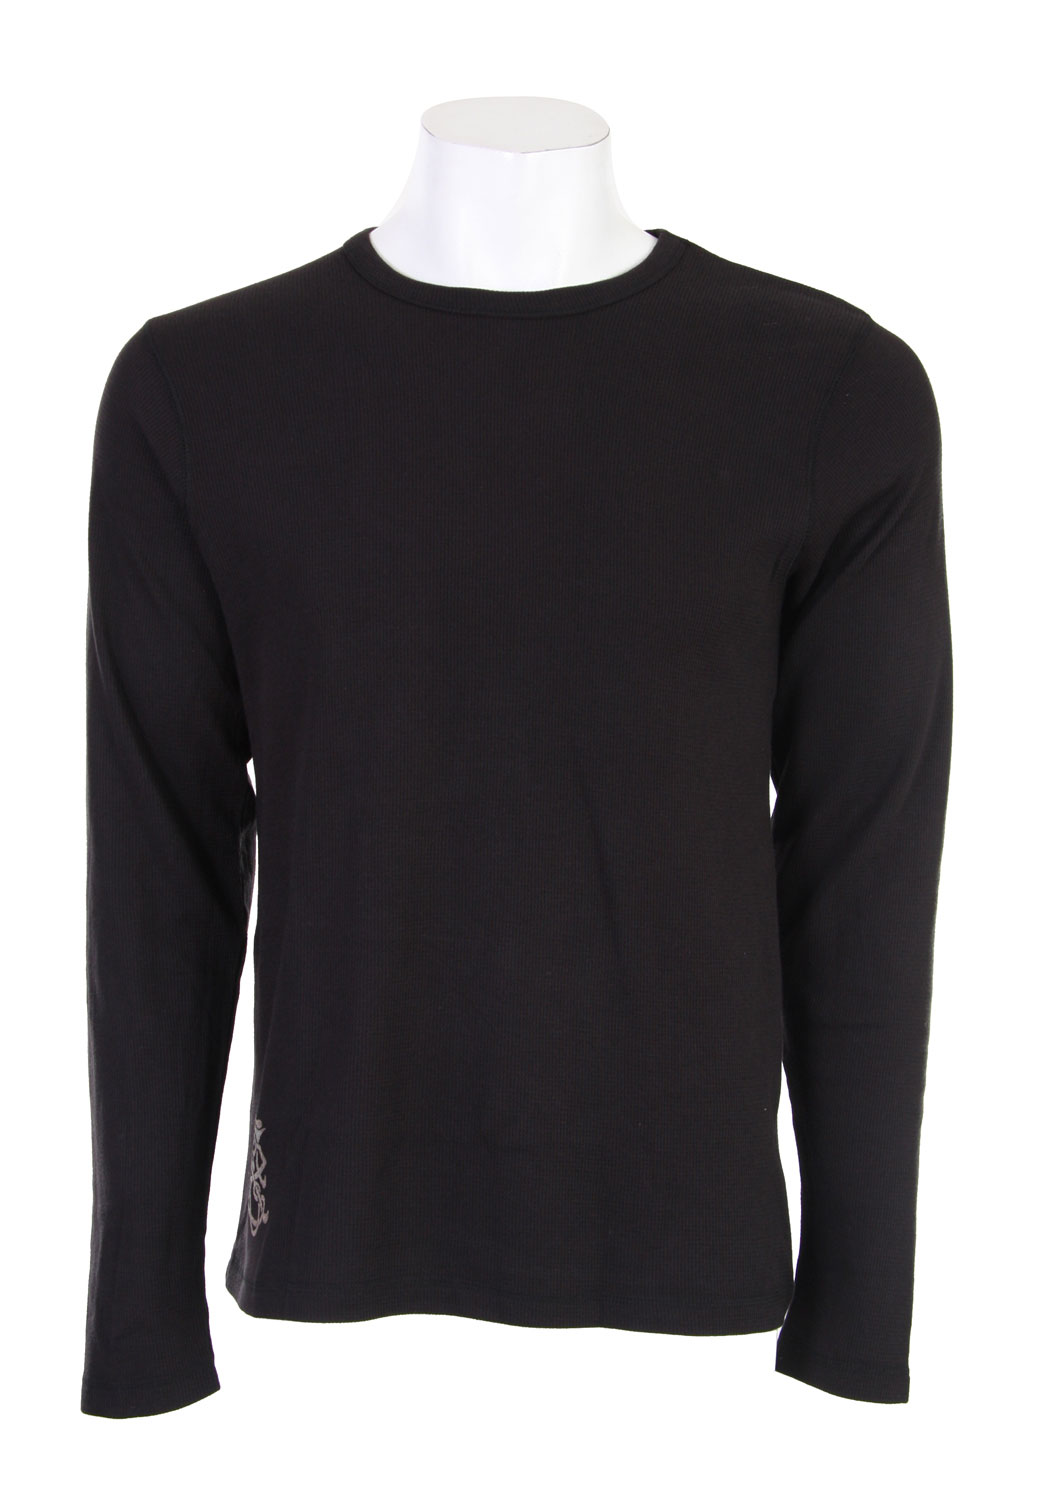 Warm thermal feel with Cappel style. The Cappel Thermal L/S Shirt - 100% Cotton - $17.35